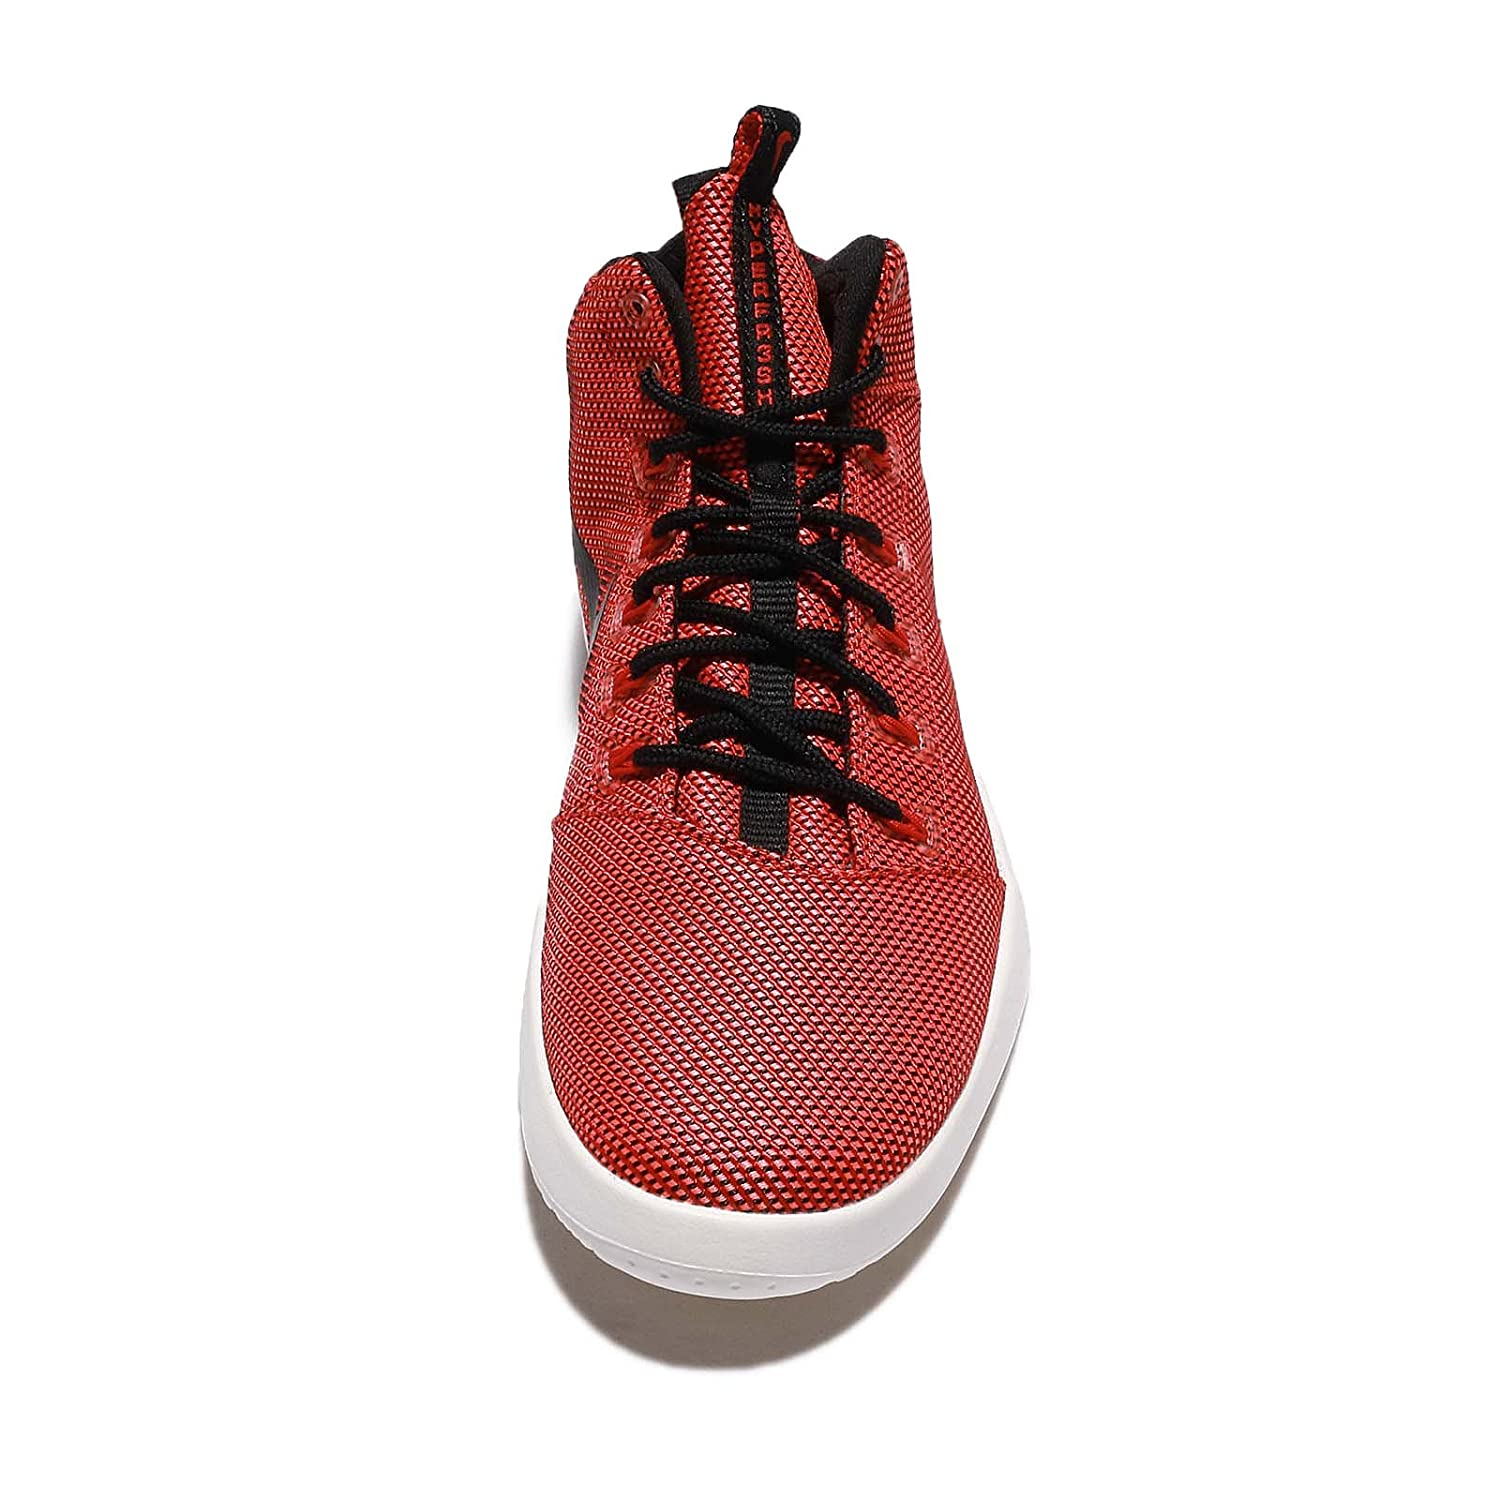 Nike Mens Hyperfr3sh Round Toe Canvas Basketball Shoe